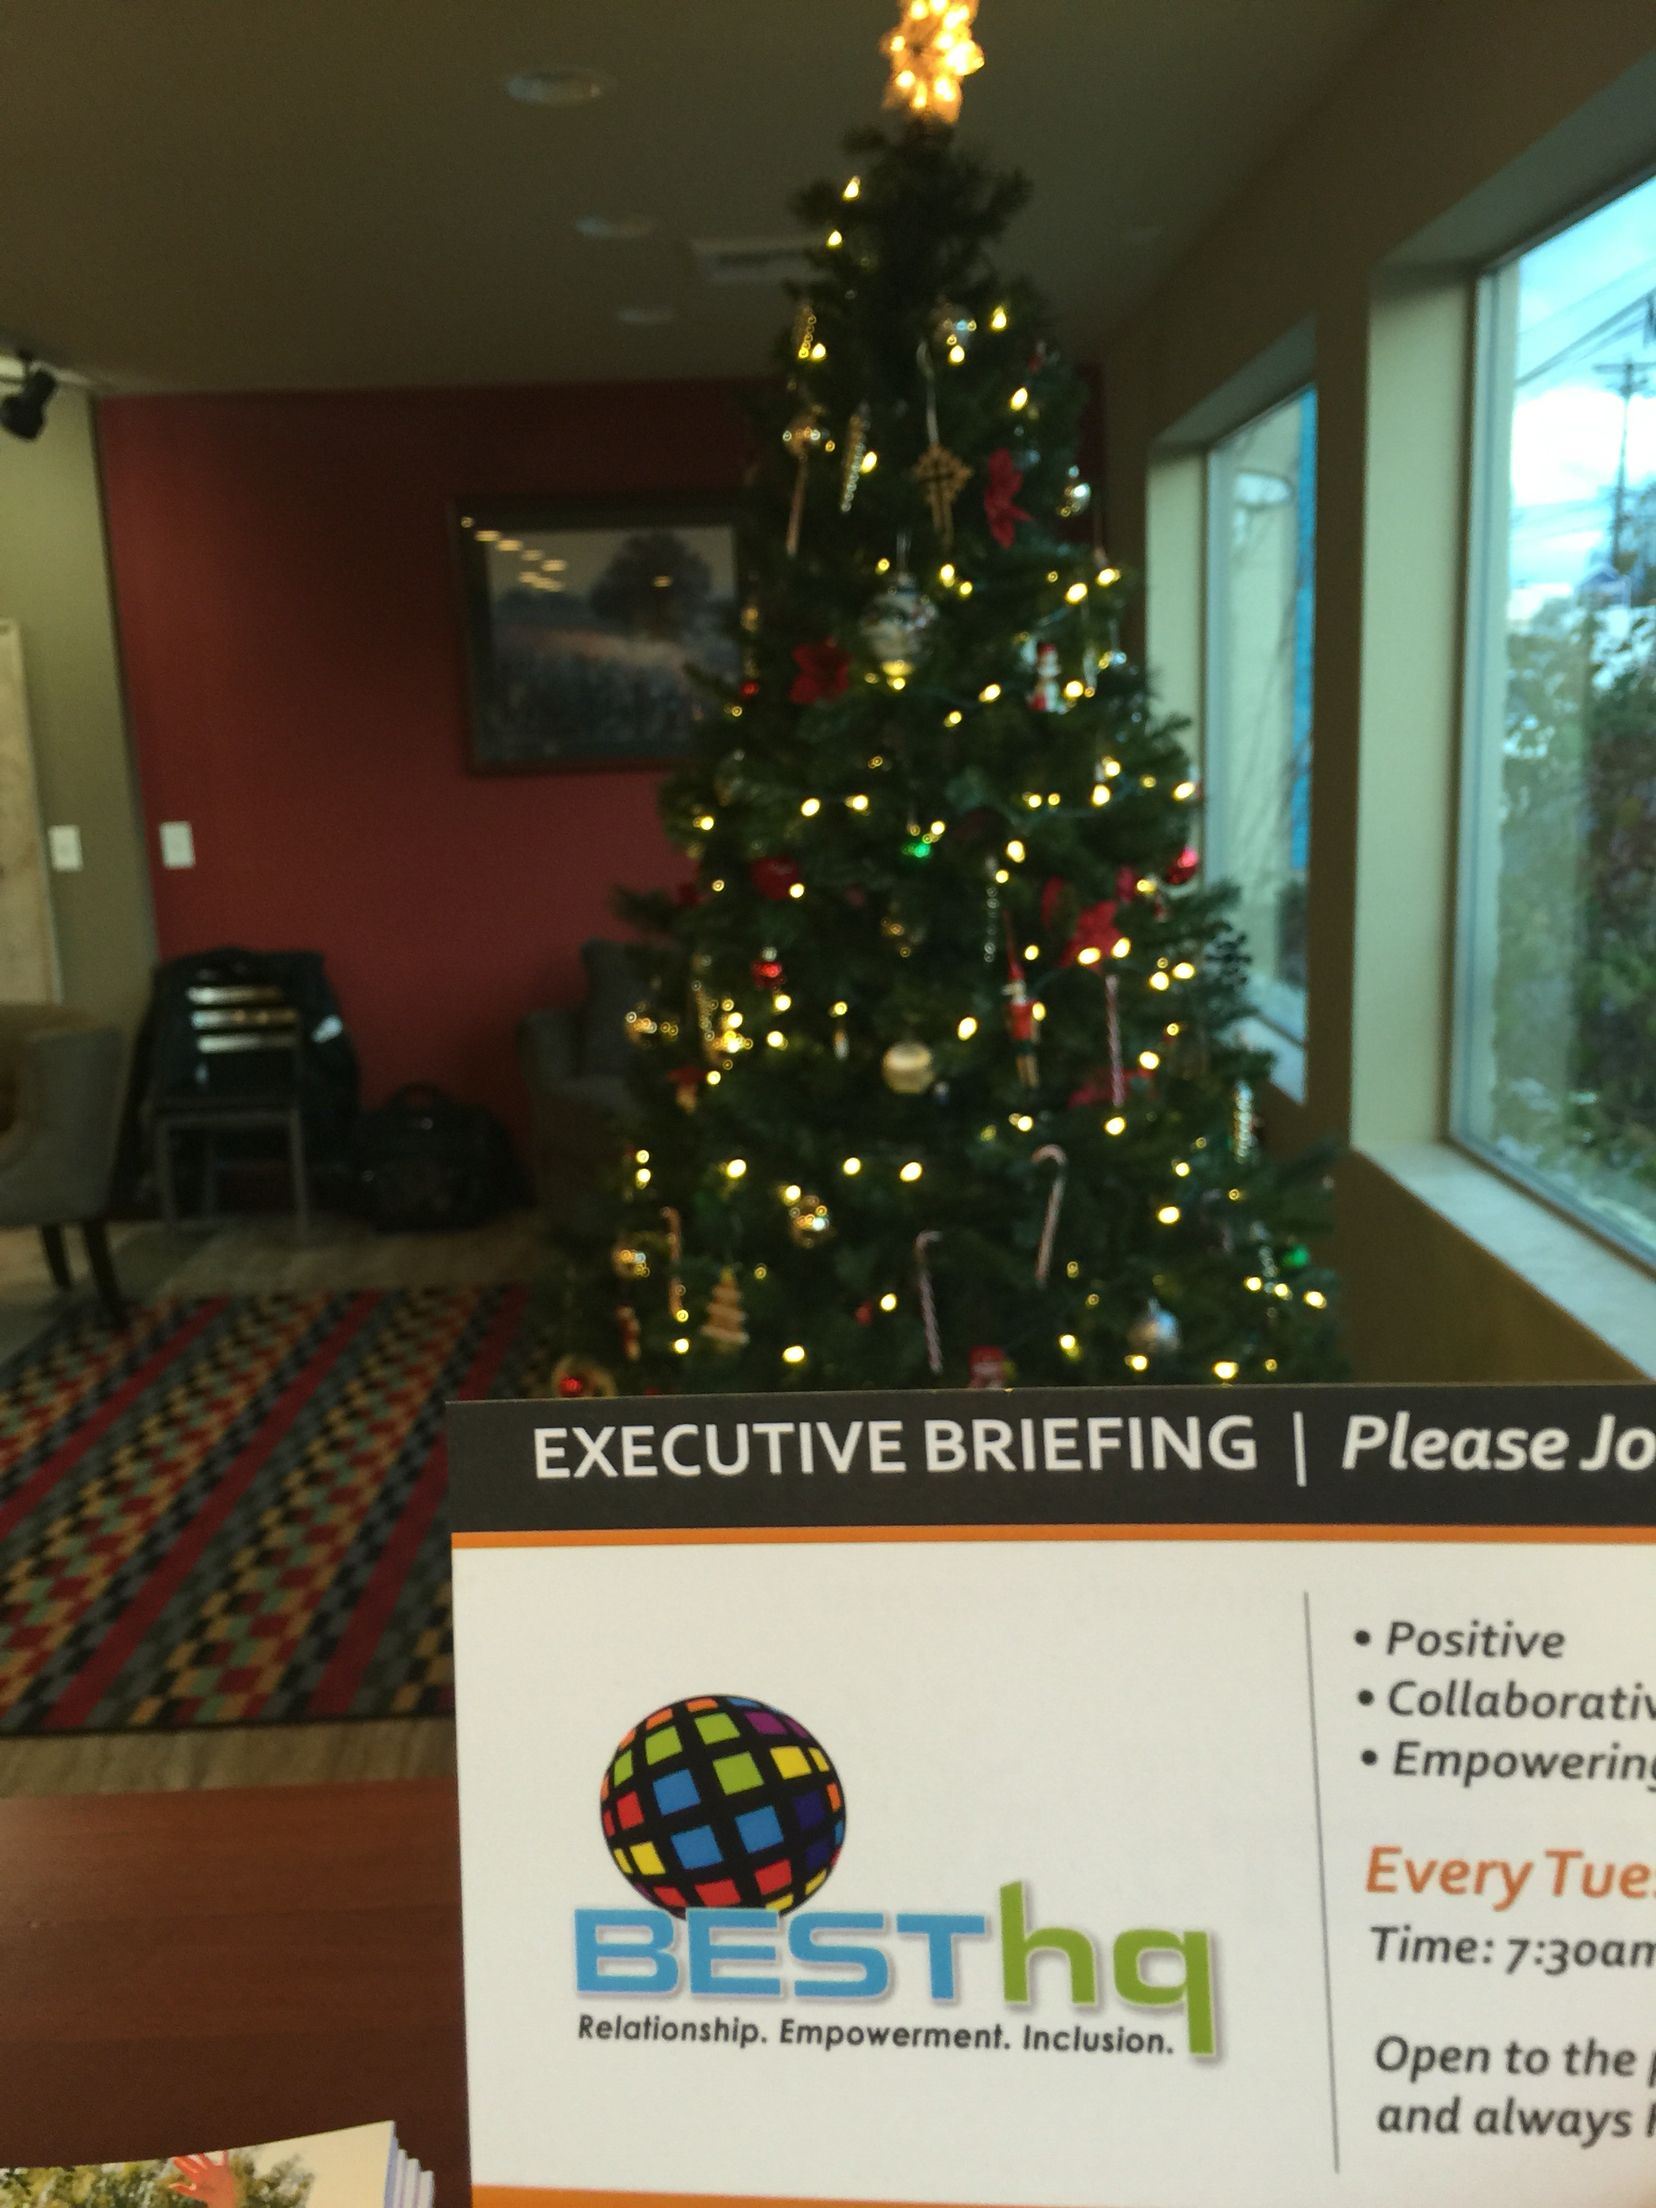 Helping trim the Christmas Tree at BestHQ in Beaverton